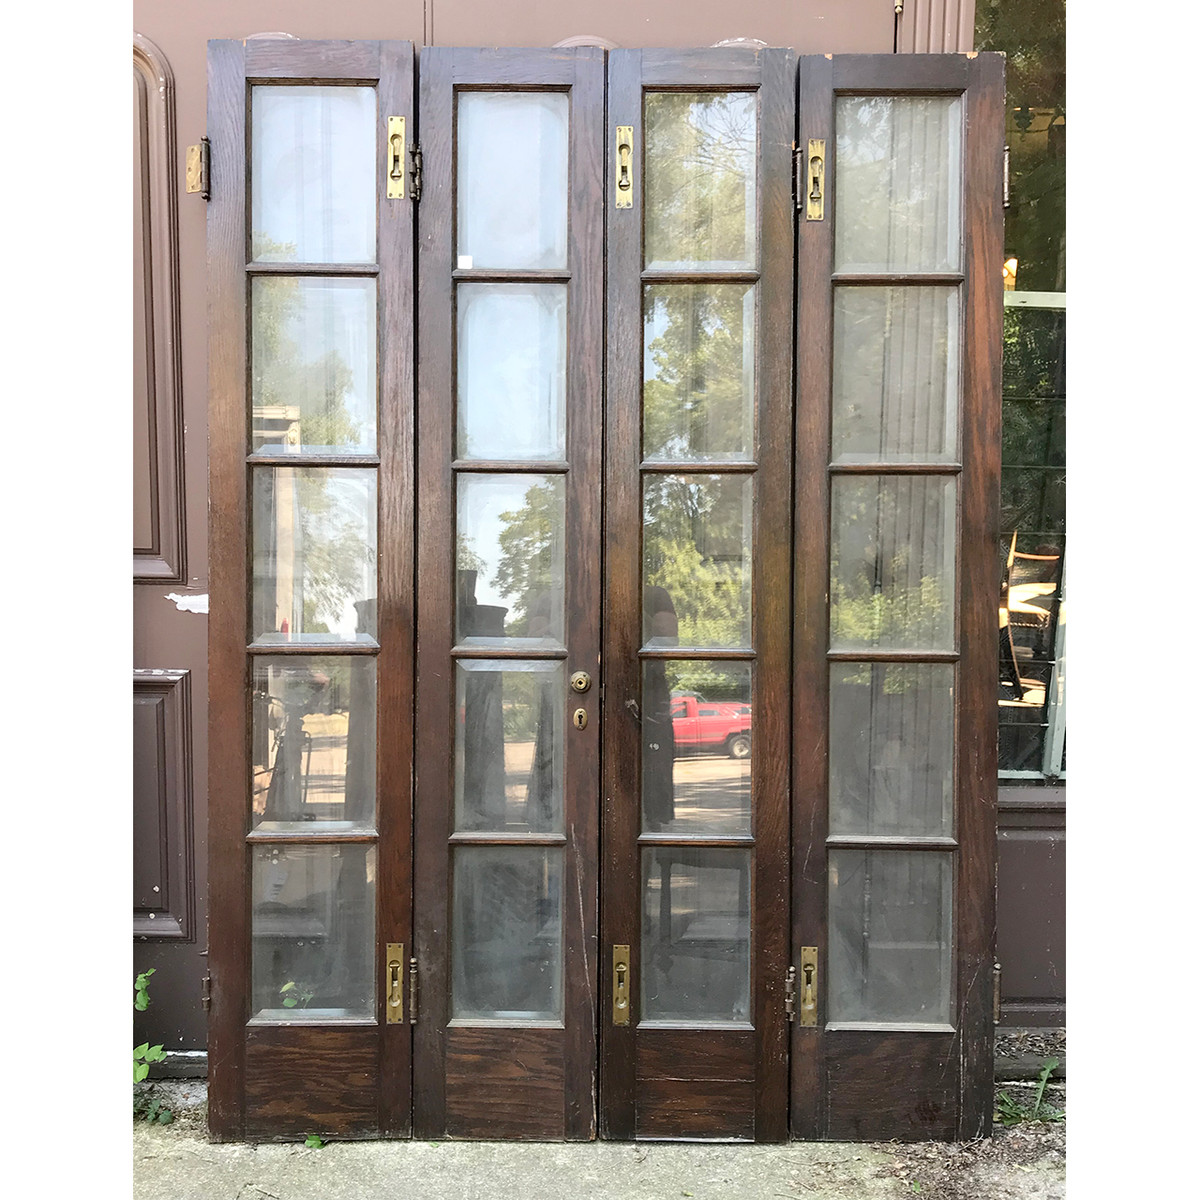 - D18084 - Antique Bifold French Doors 59